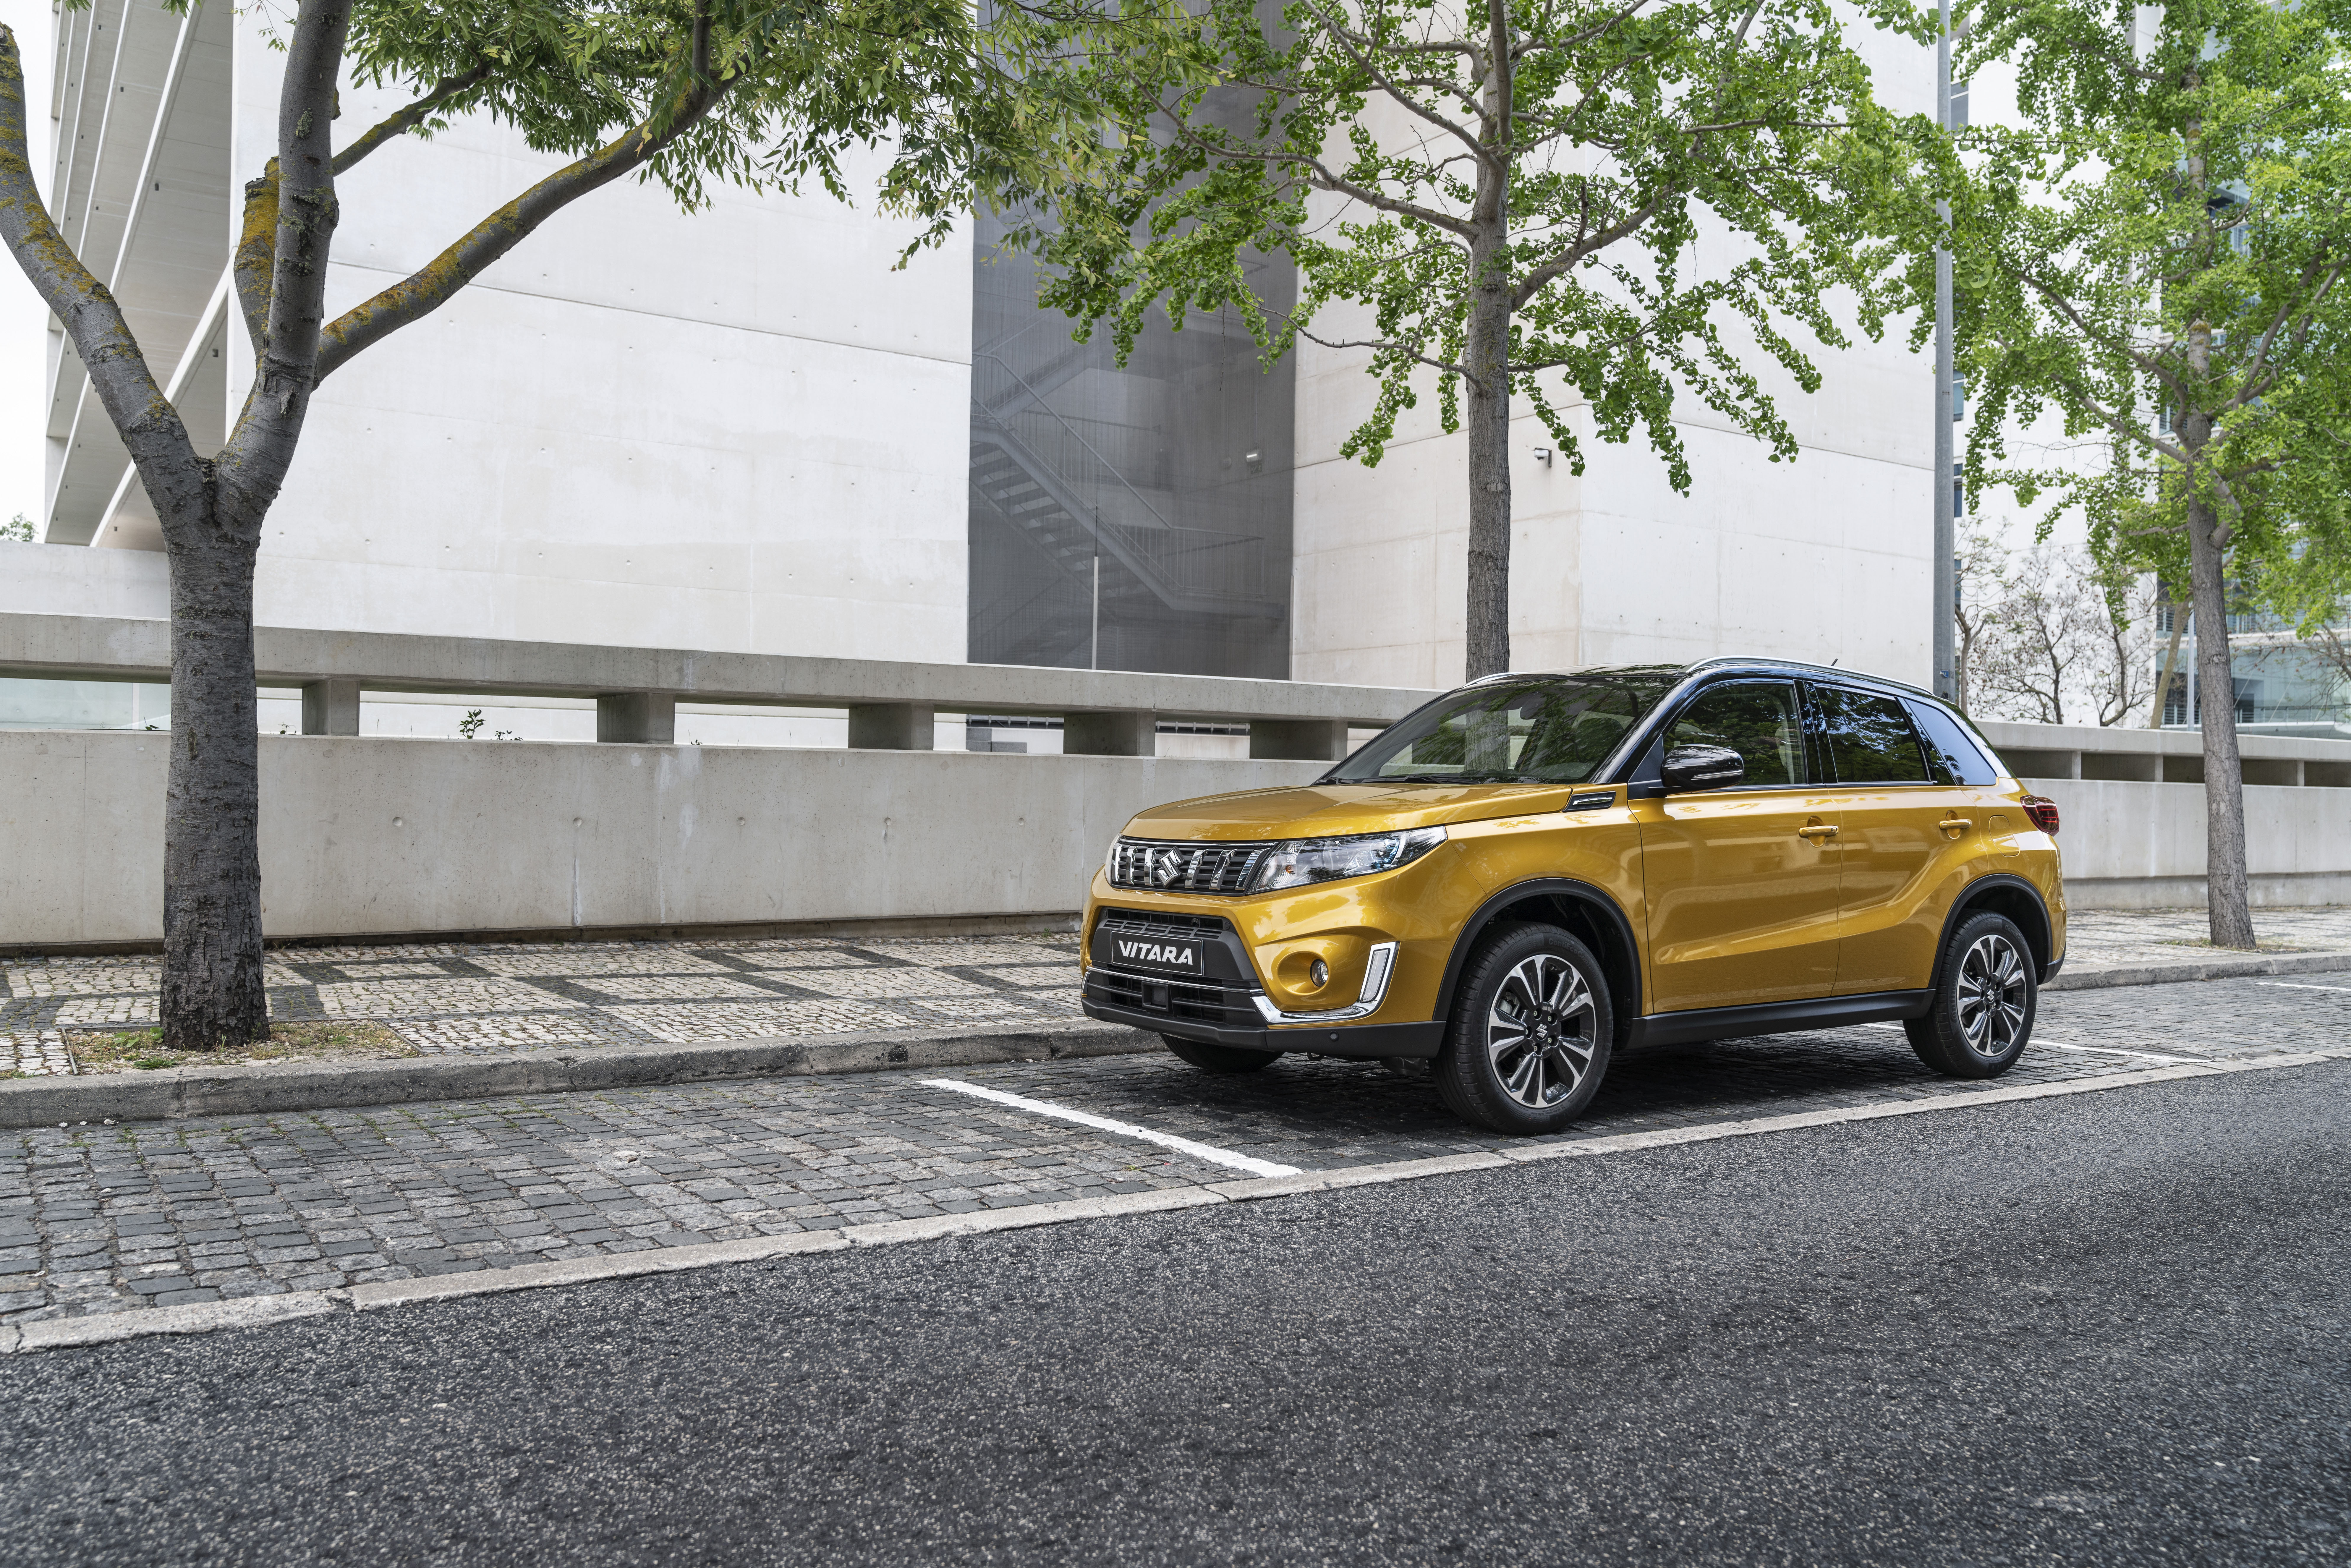 Suzuki Vitara Series Ii To Arrive In 2019 Diesel Dropped Eftm